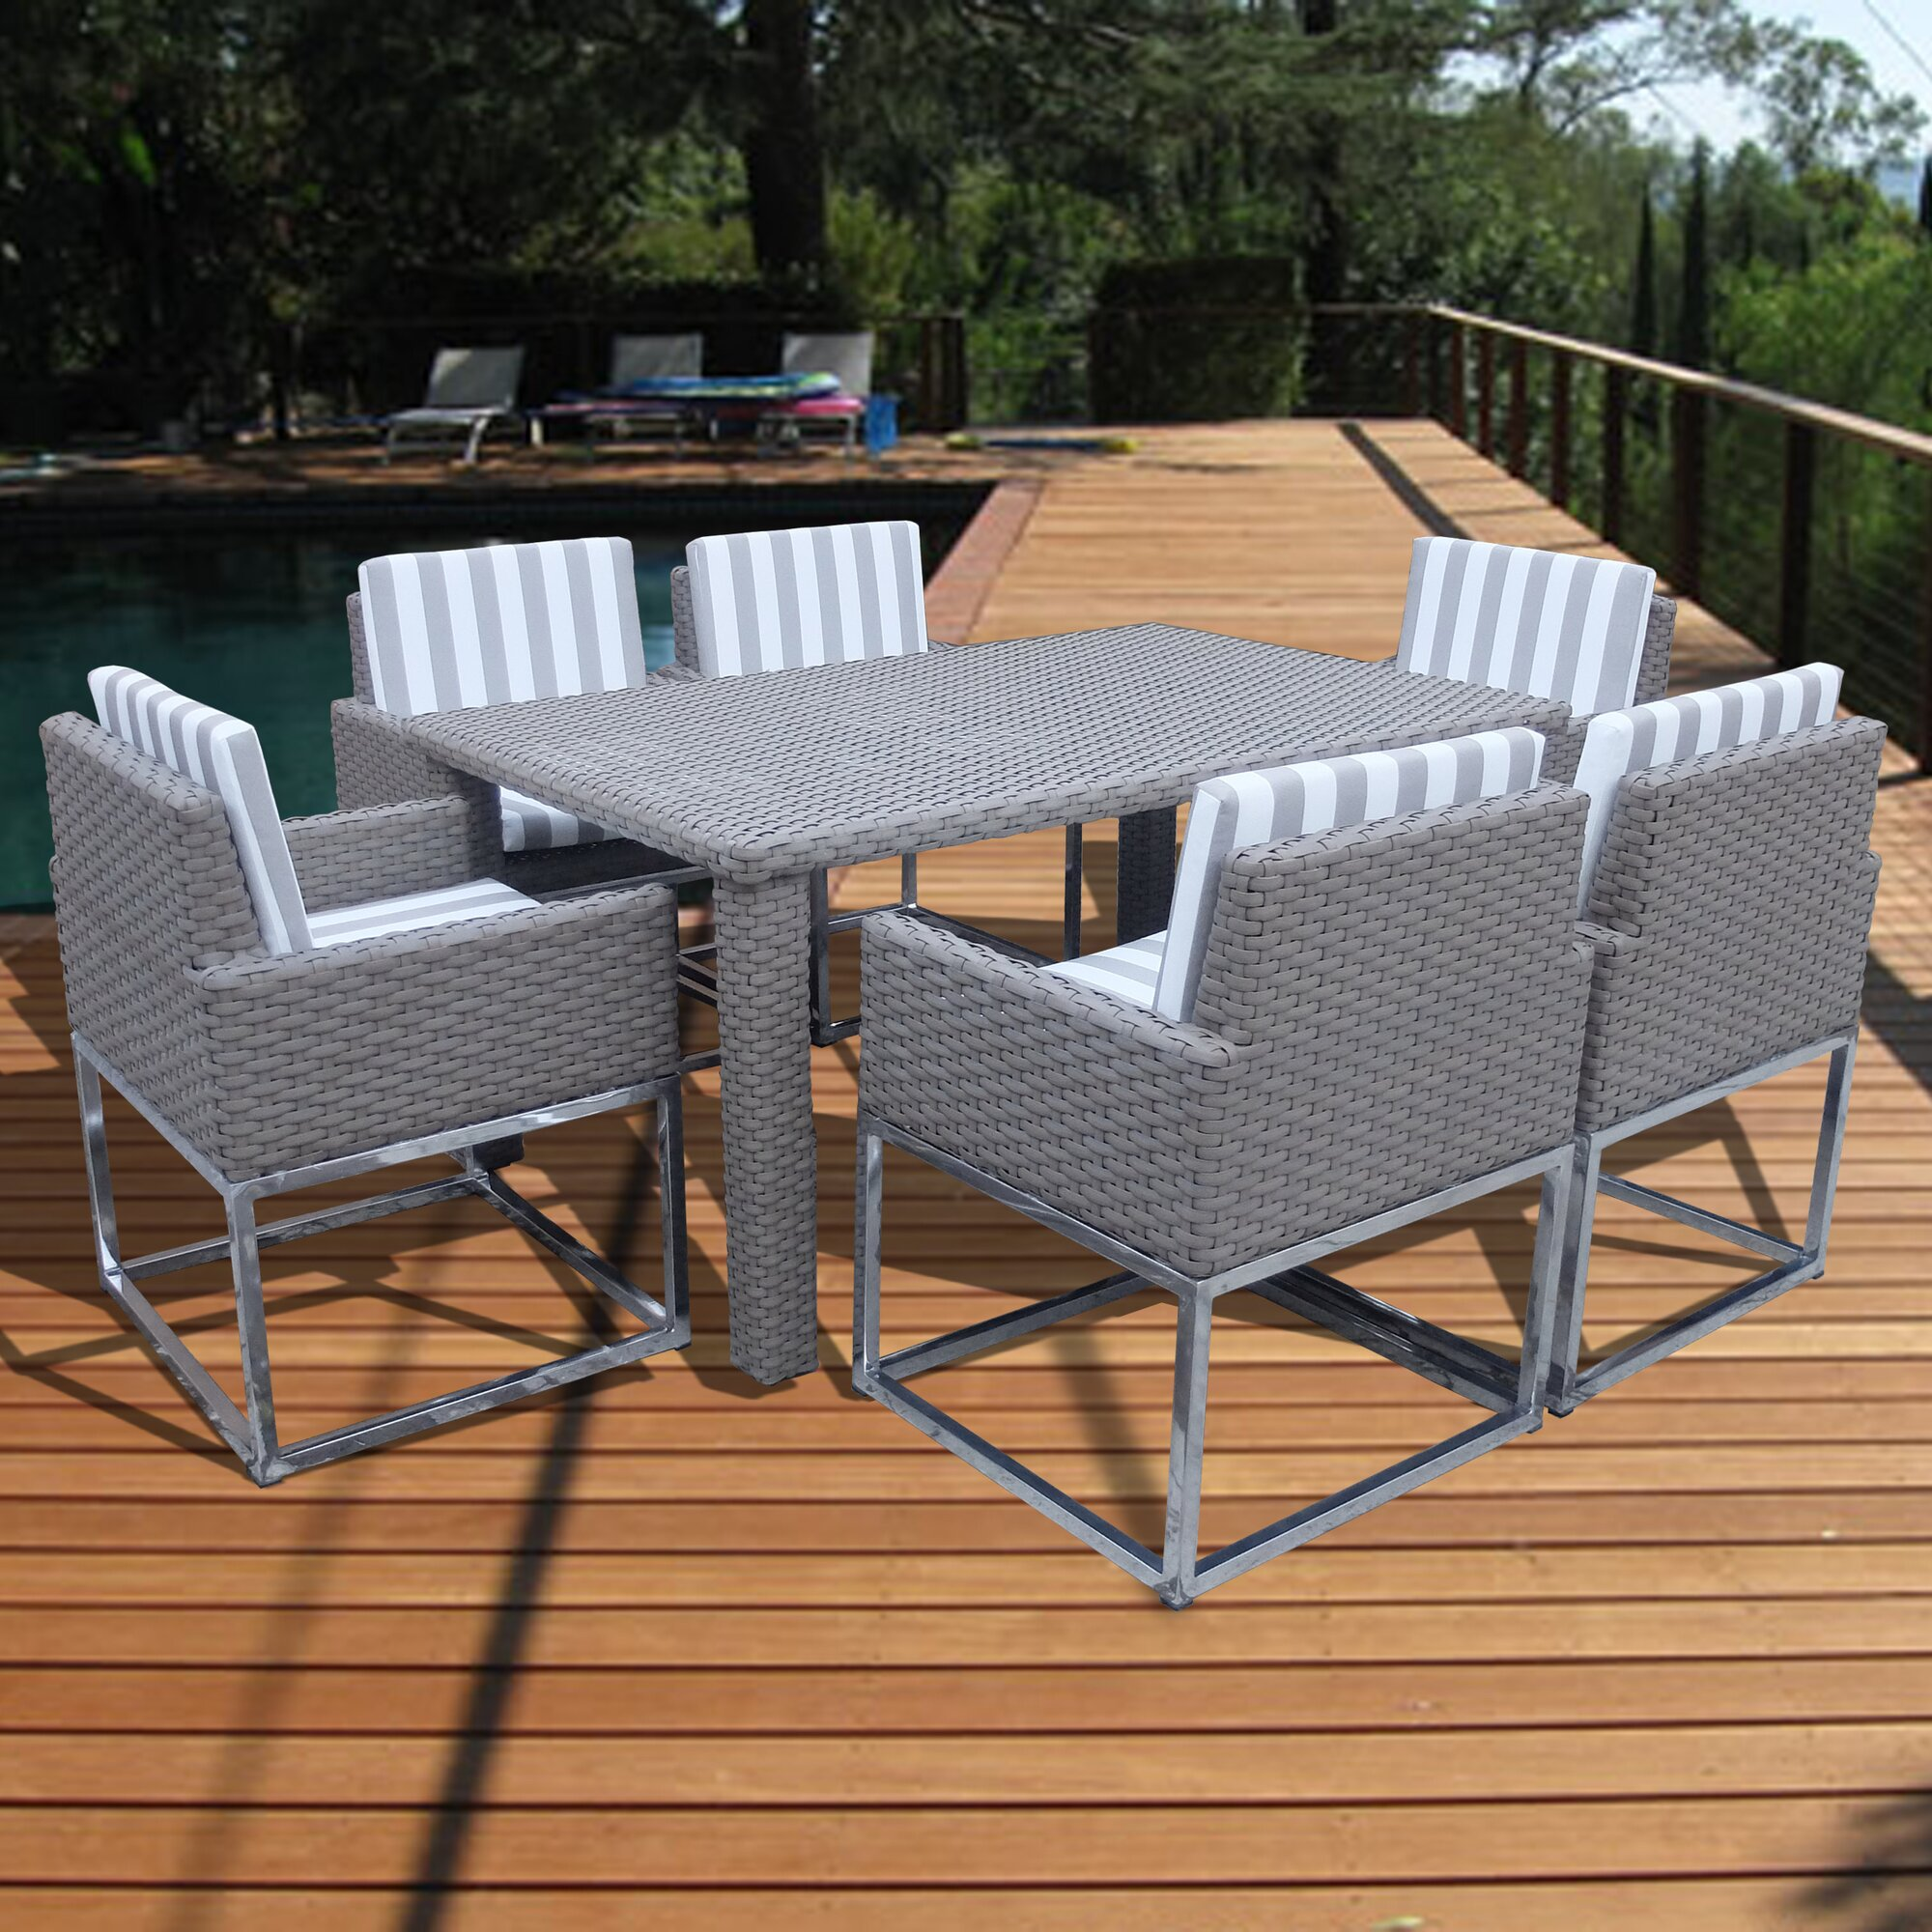 indo modern  piece dining set with cushions  reviews  allmodern - indo modern  piece dining set with cushions